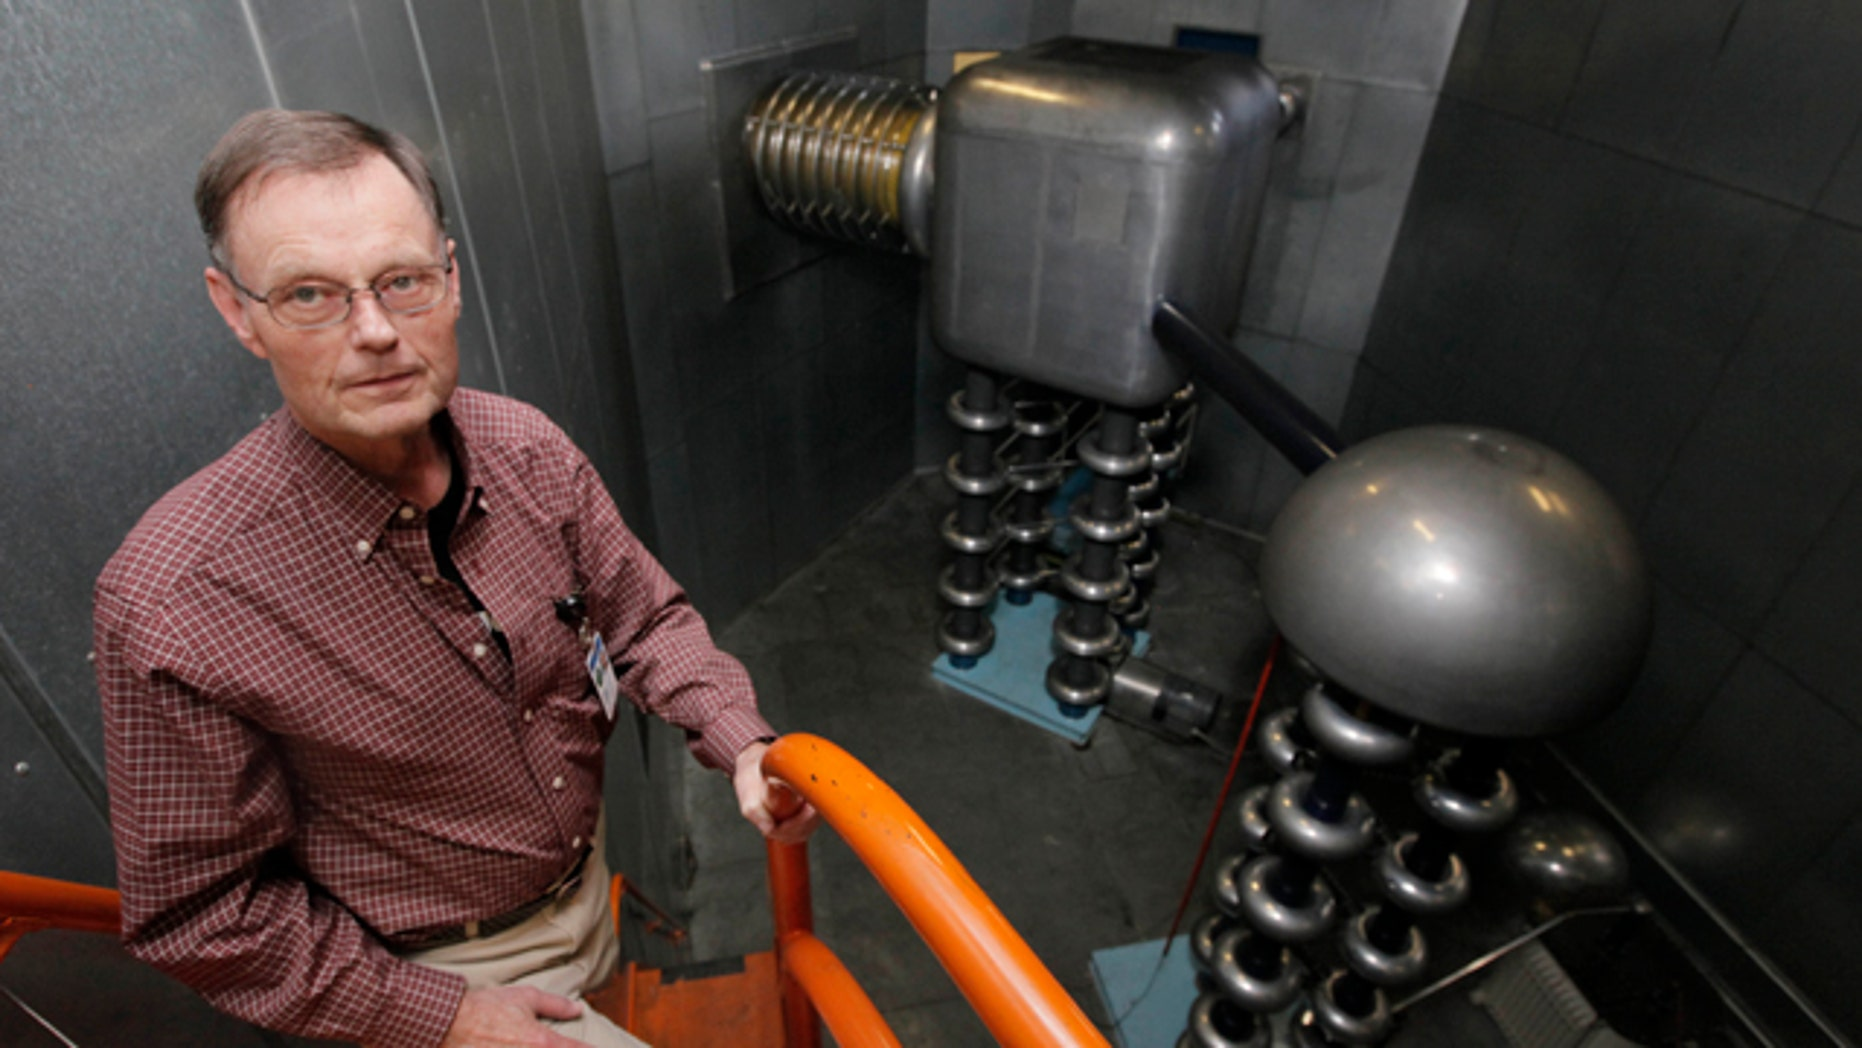 Accelerator Division head Roger Dickson, stands in front of a CockcroftWalton generator at the Fermi National Accelerator Laboratory in Batavia, Ill. a week before its scheduled shutdown.